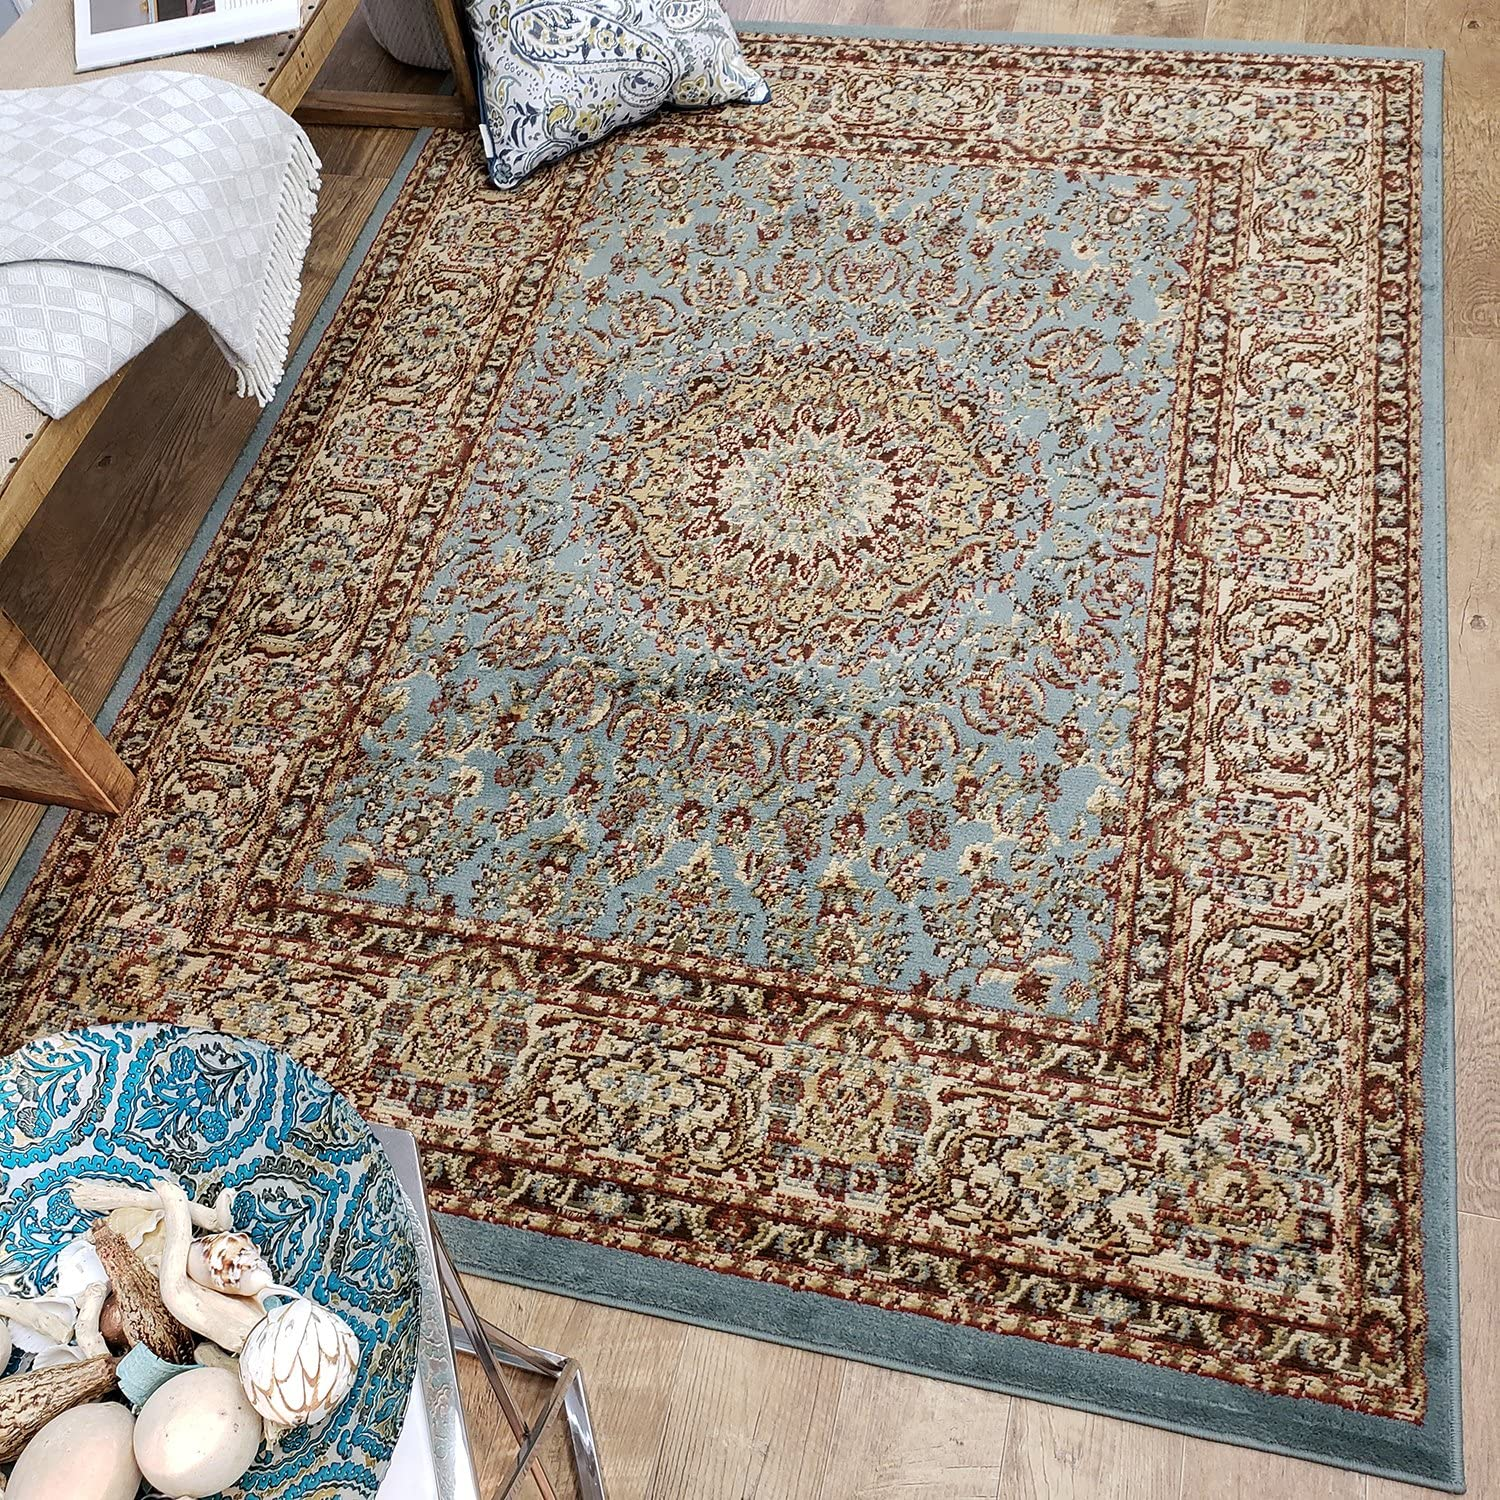 Traditional Hallway Runner Rug for Everyday Use, 7'10